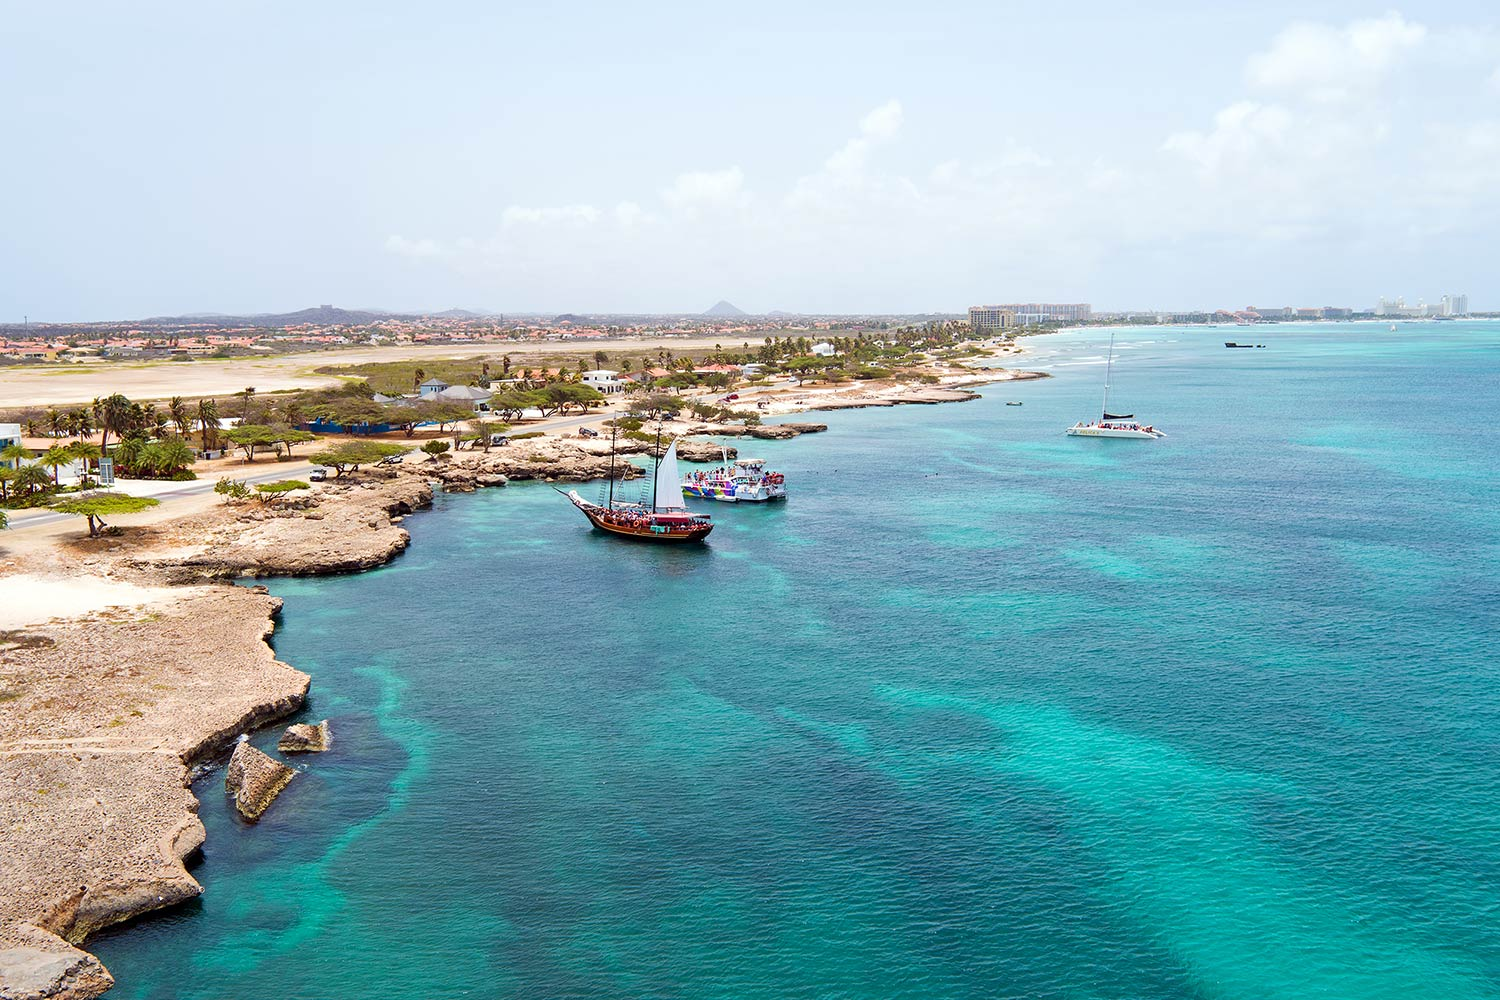 Several boats bob just off a the jagged coastline of Oranjestad